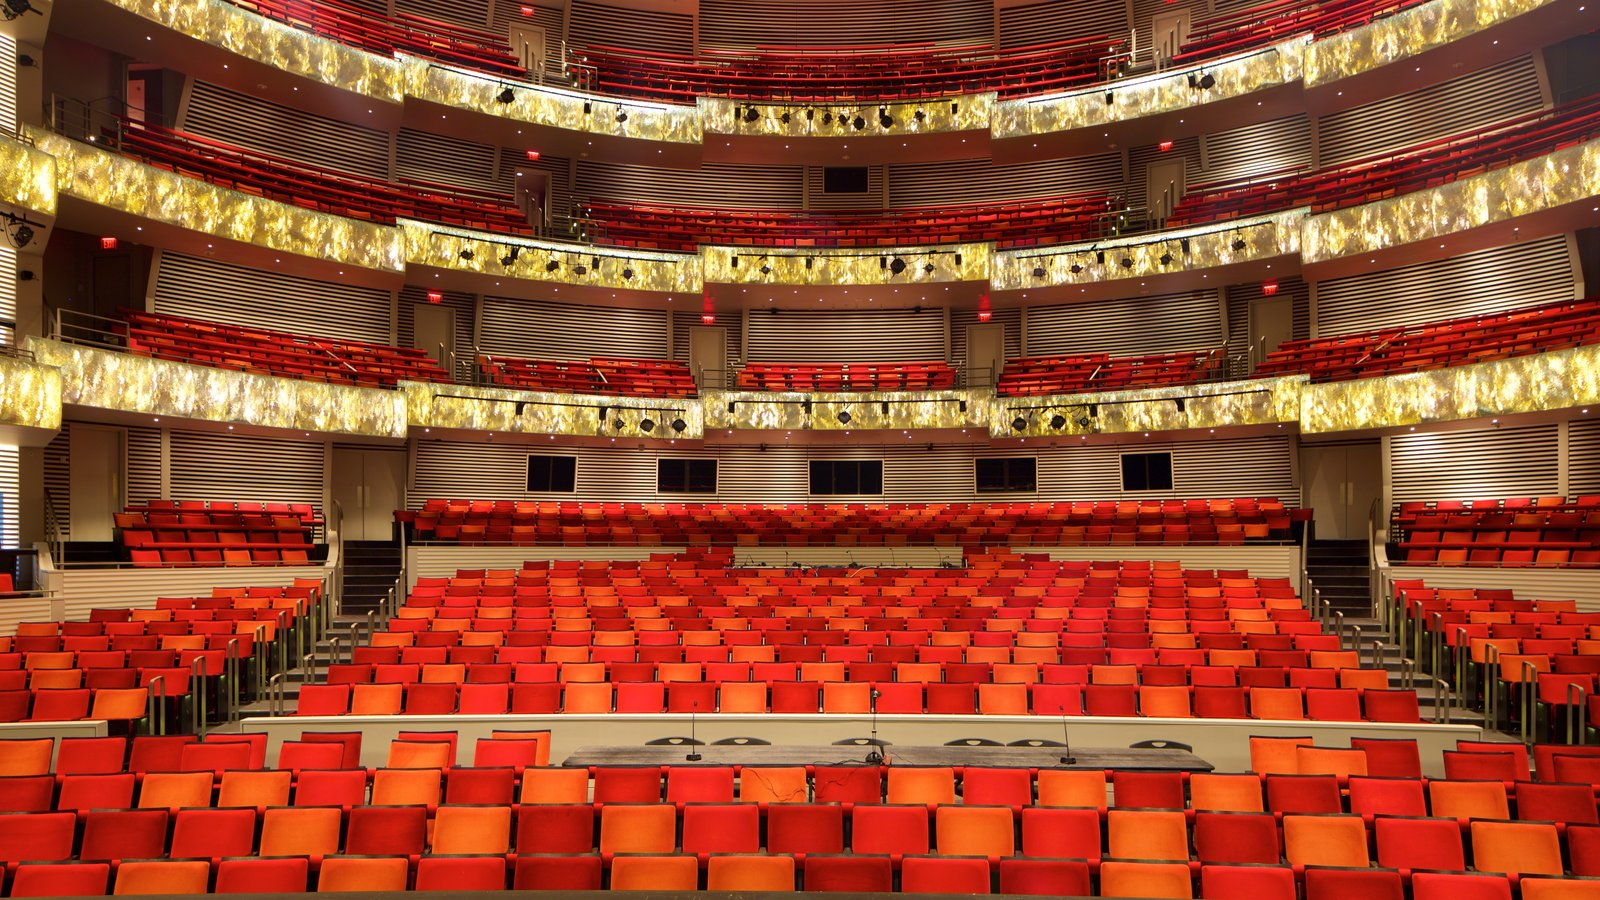 Kauffman Center for the Performing Arts showing interior views and theatre scenes